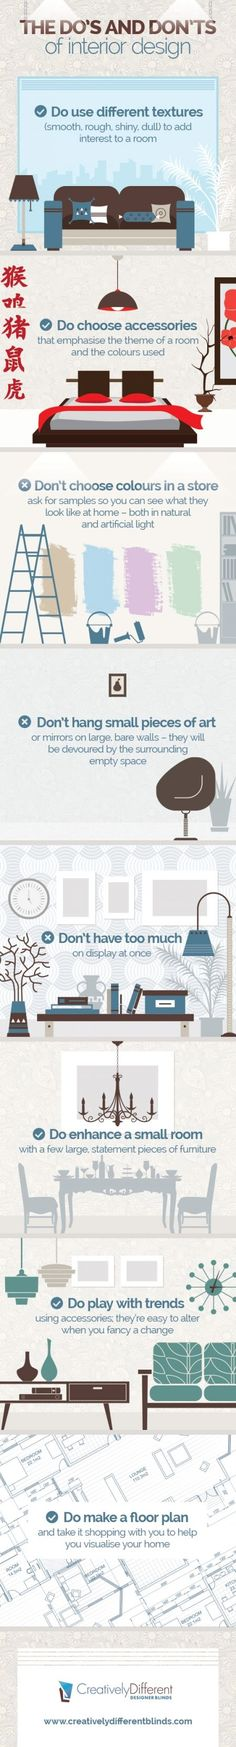 Infographic: The Do's and Don'ts of Interior Design